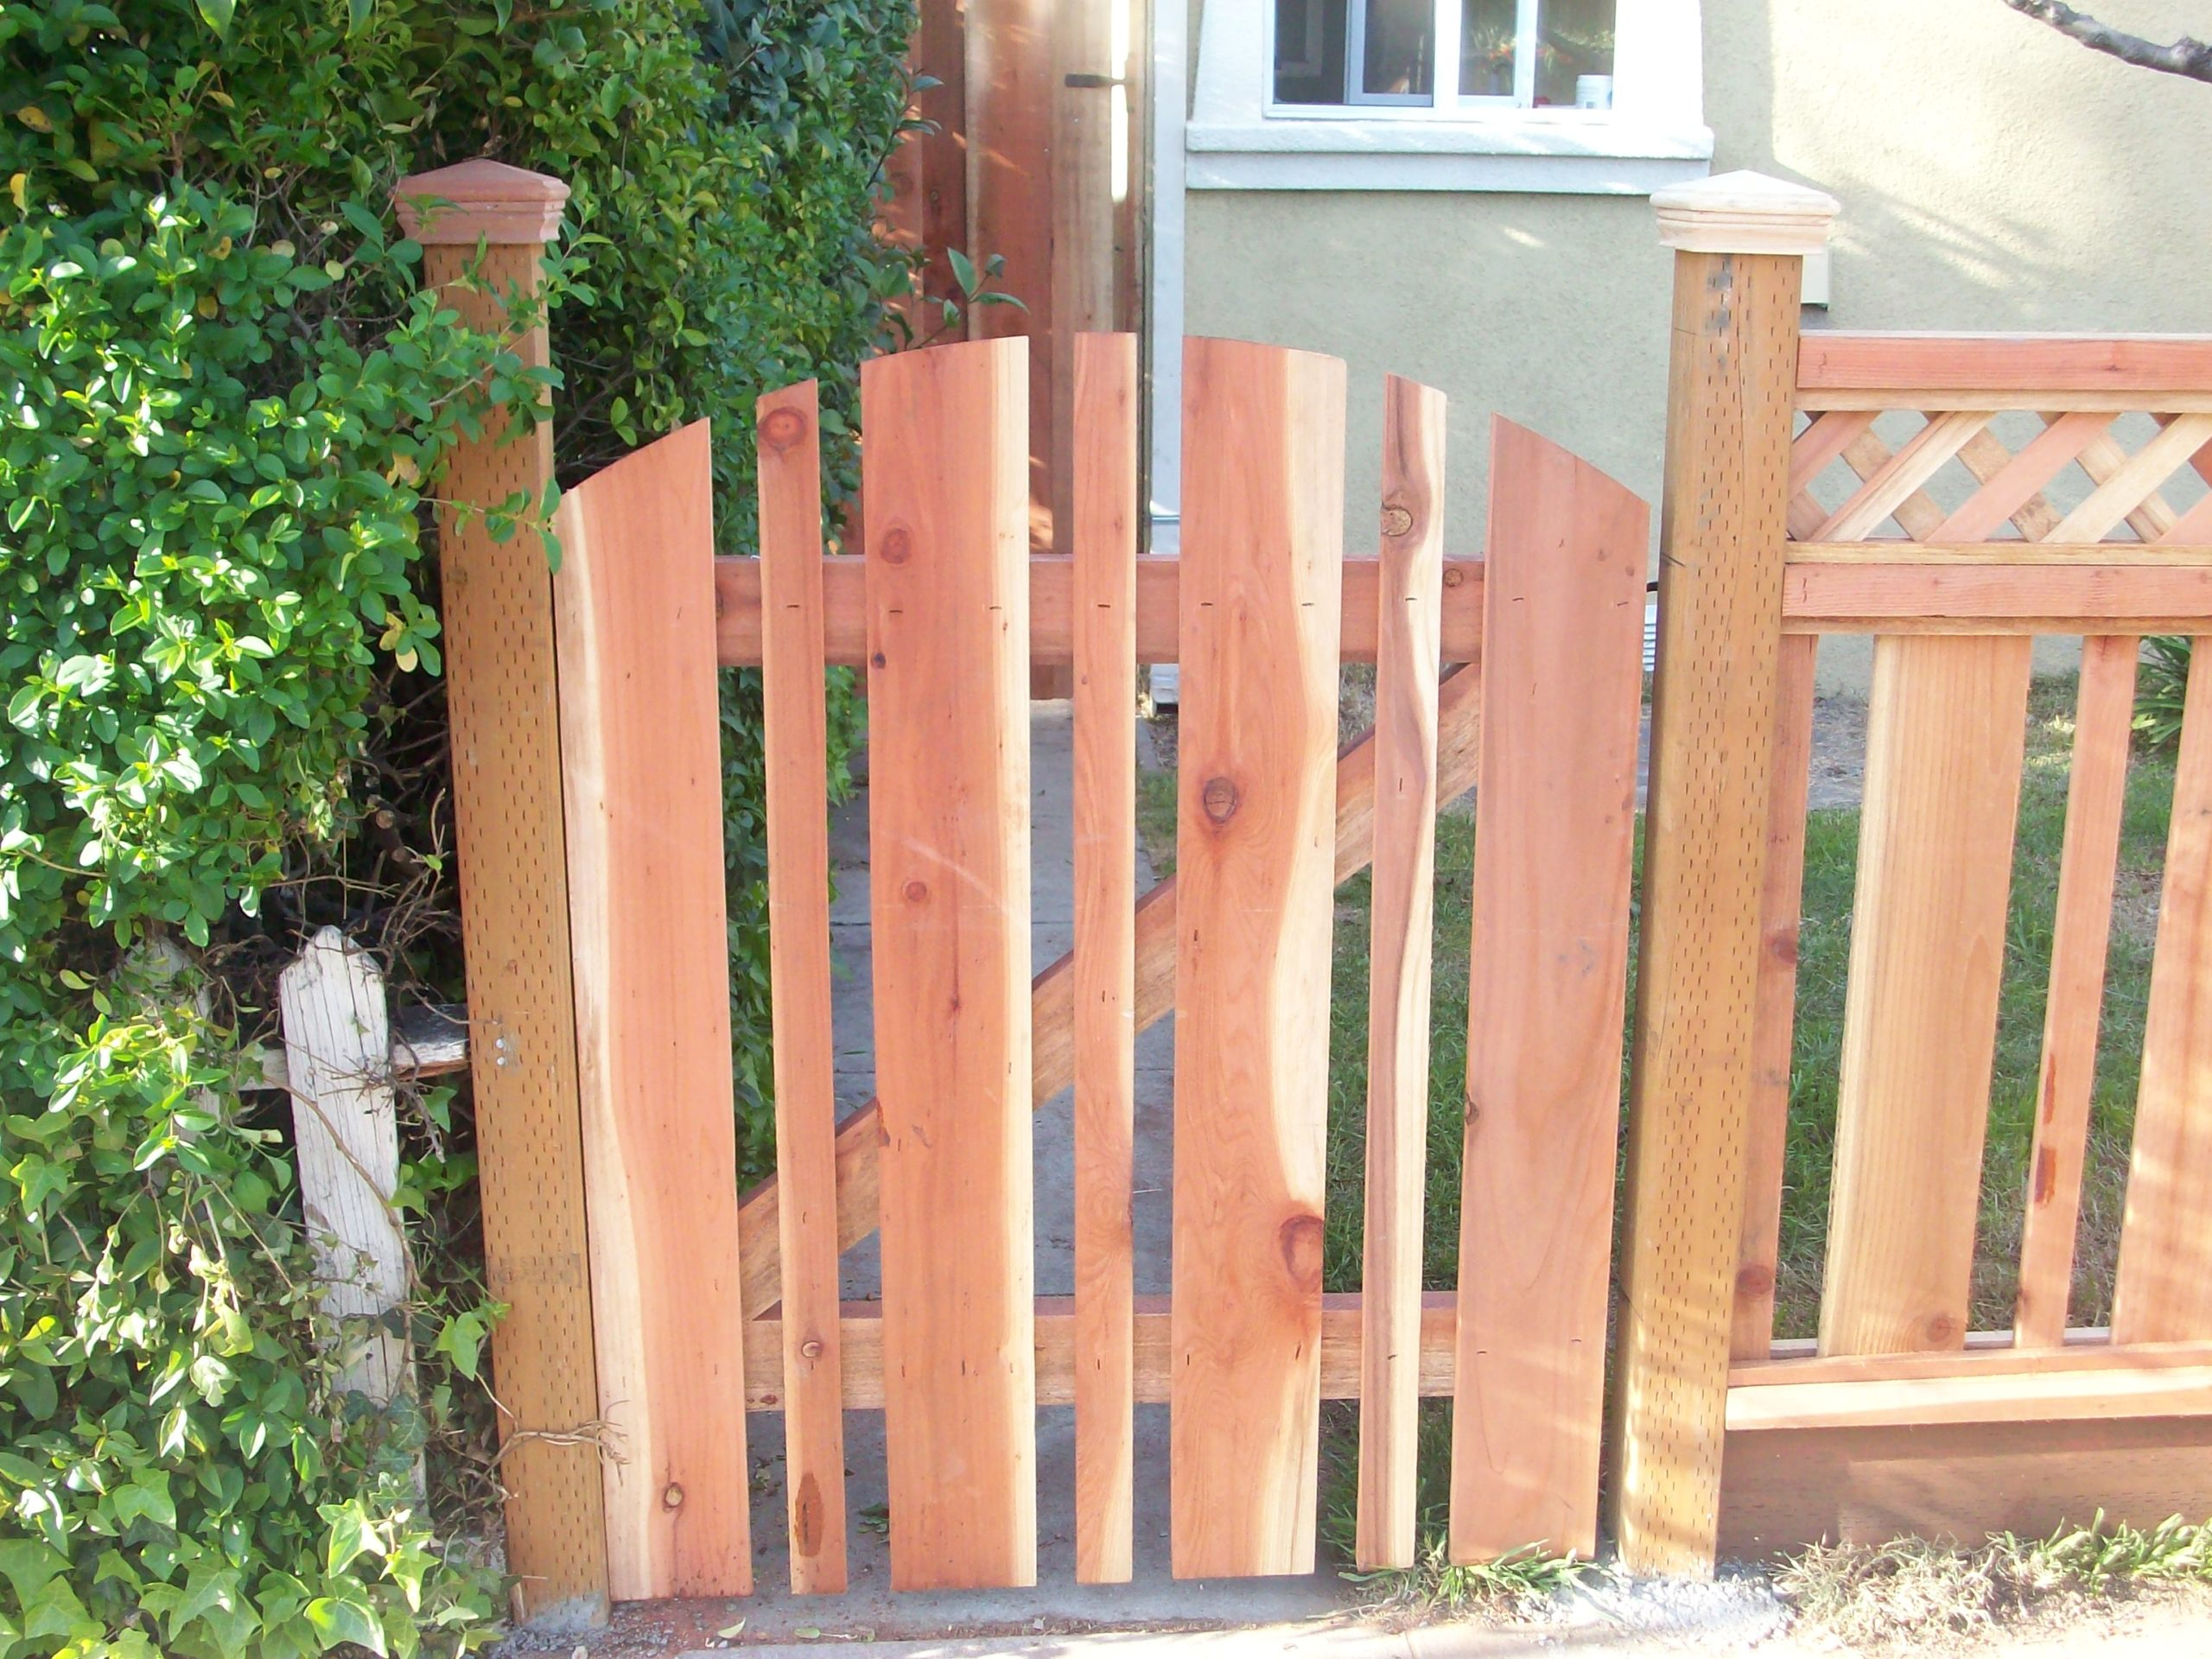 redwood picket gate and fence with lattice Mountain View, CA